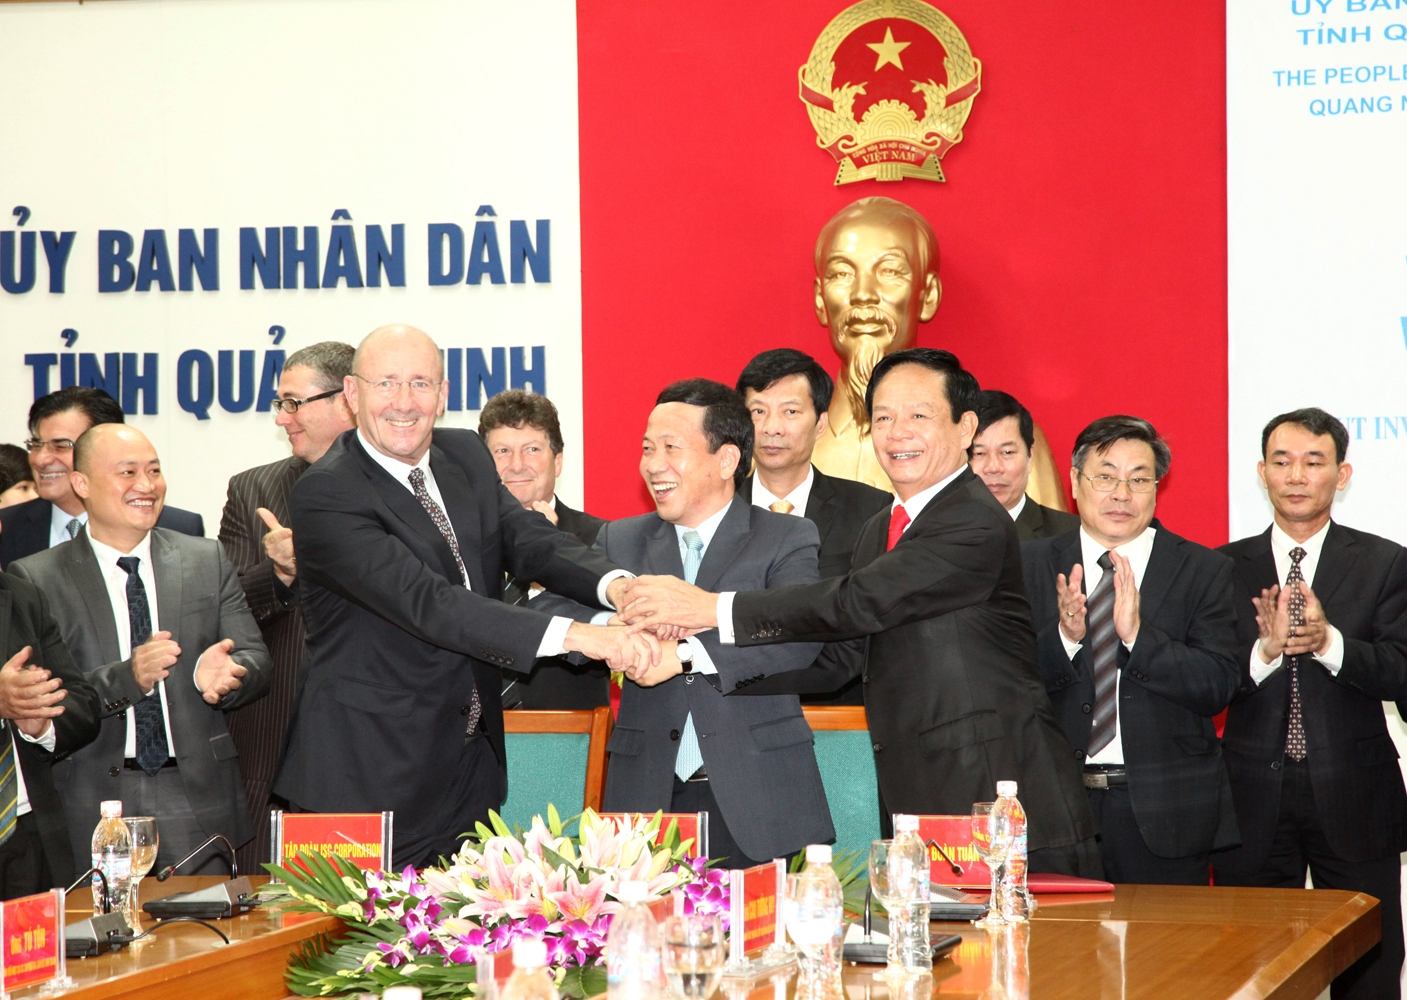 Quang Ninh eyes casino project